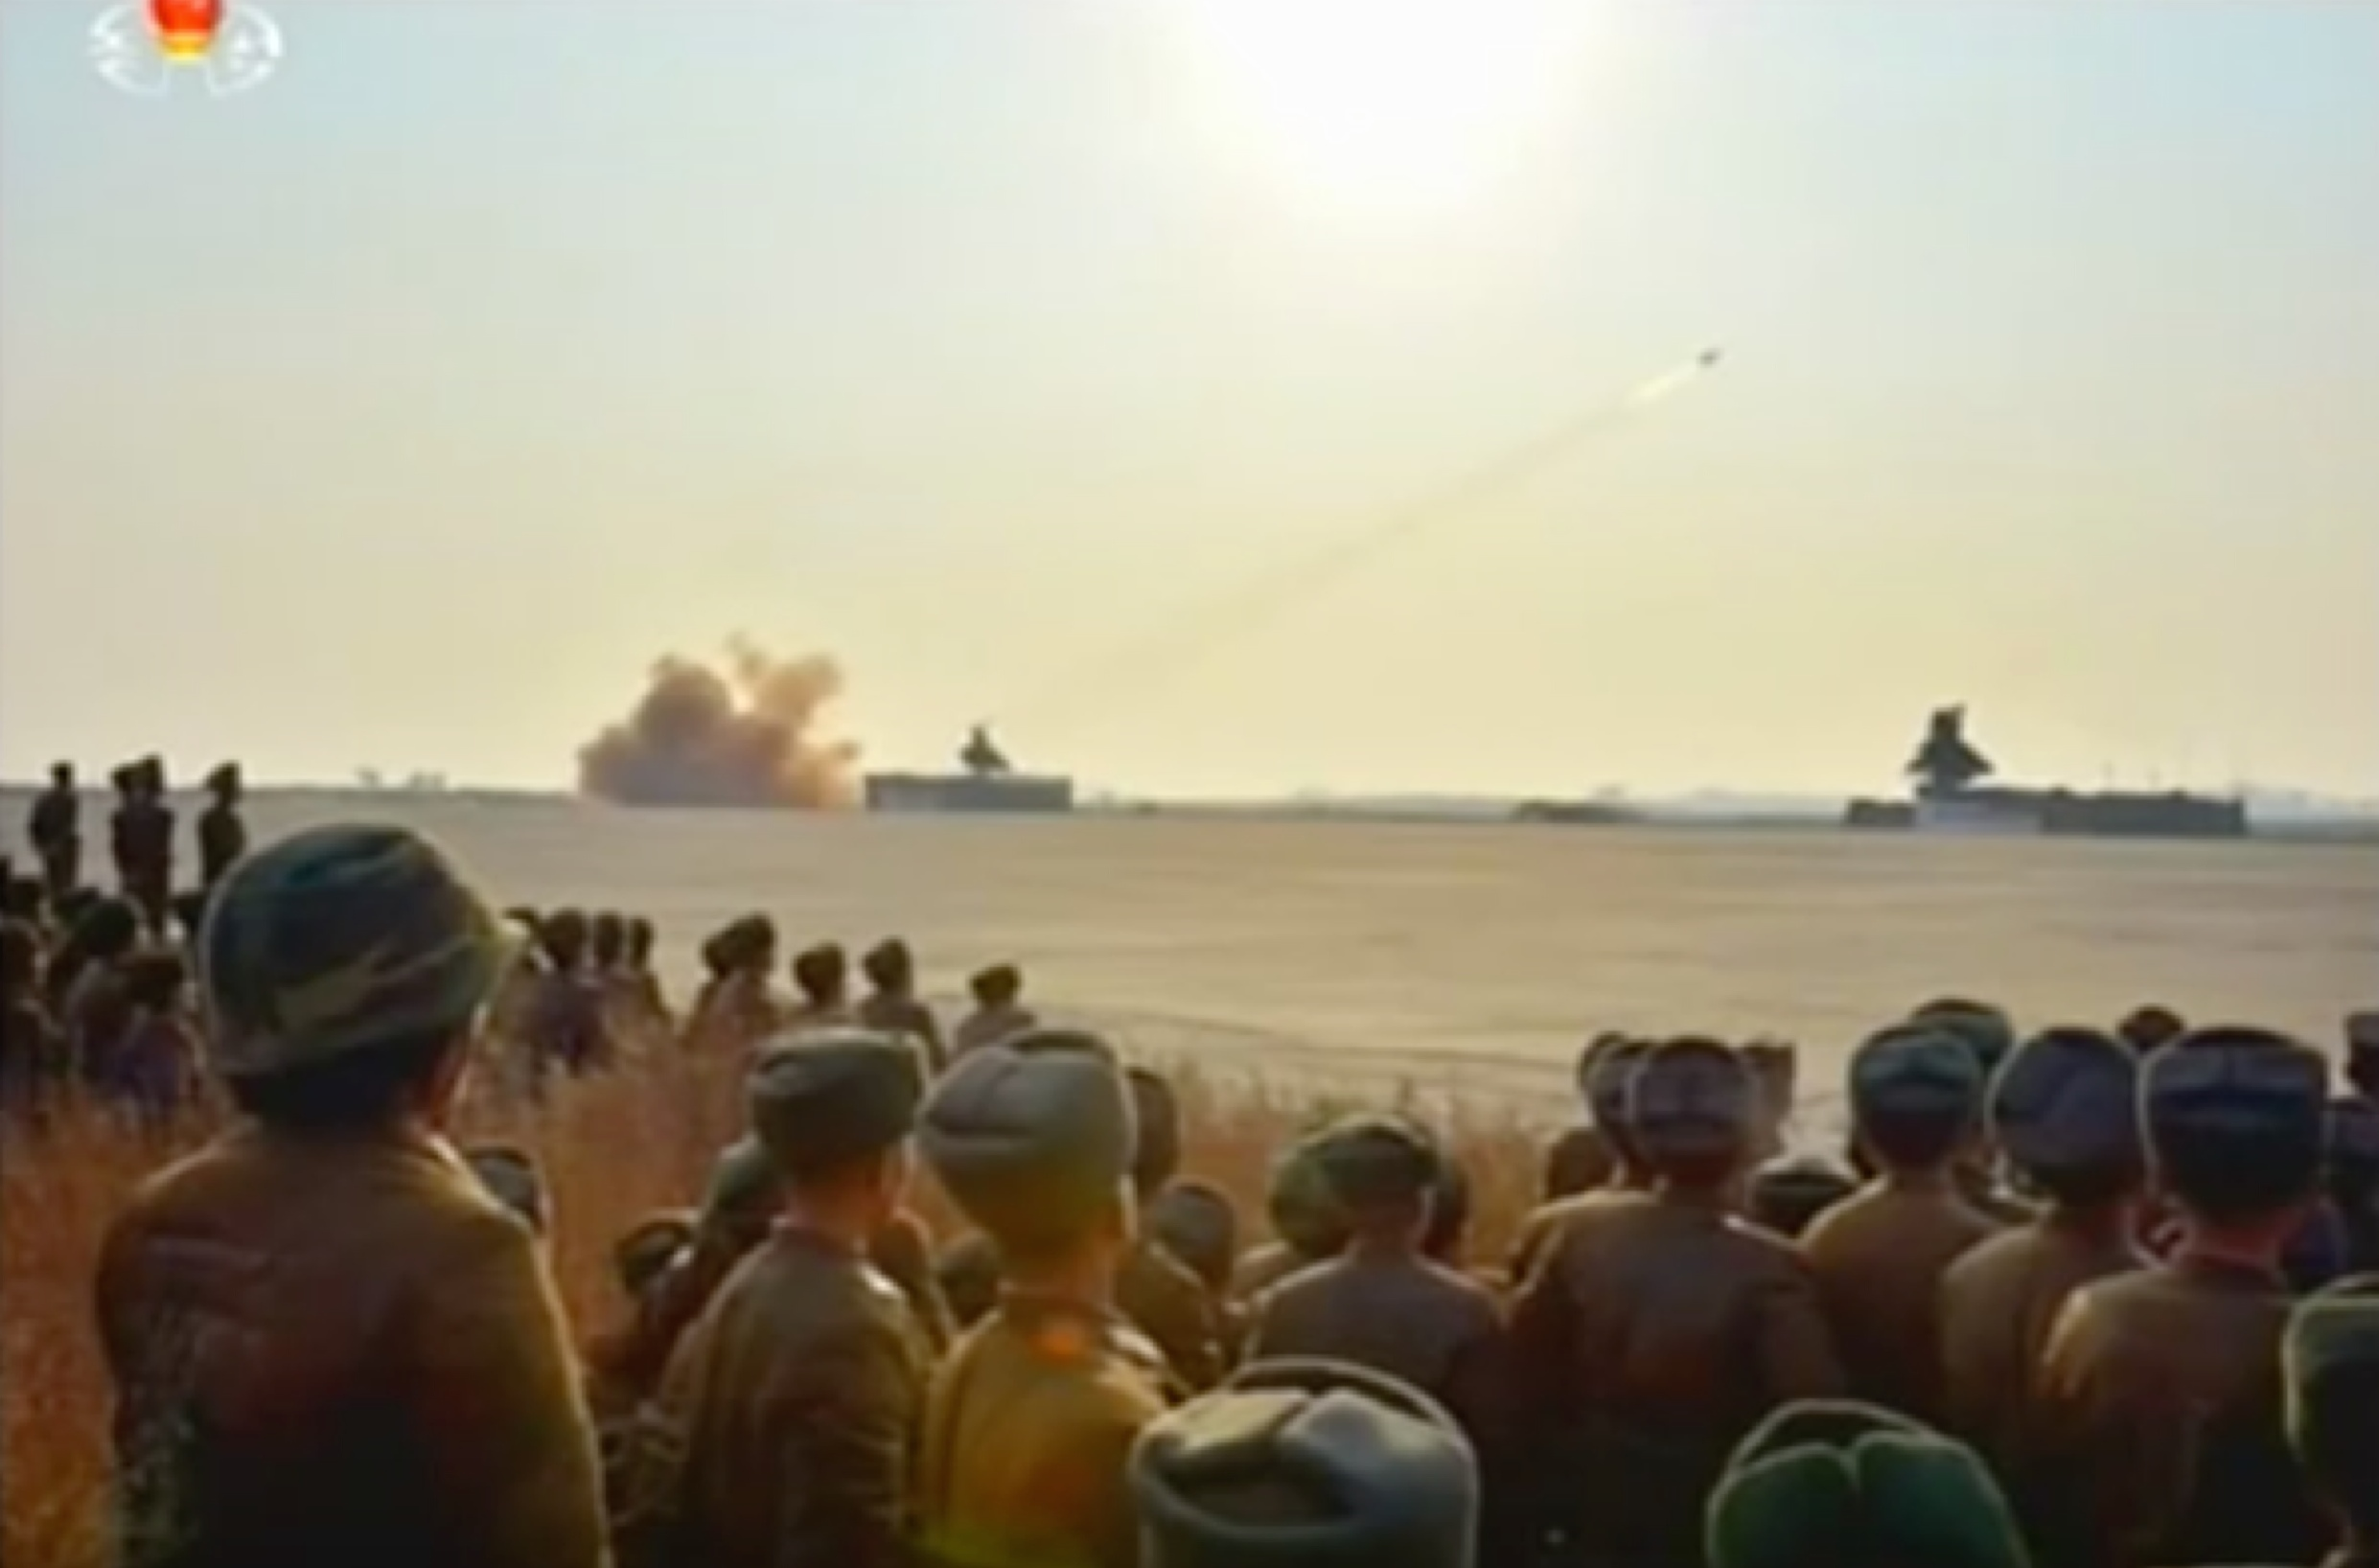 KPA service members and officers observe the anti-air rocket exercise (Photo: KCTV screen grab).